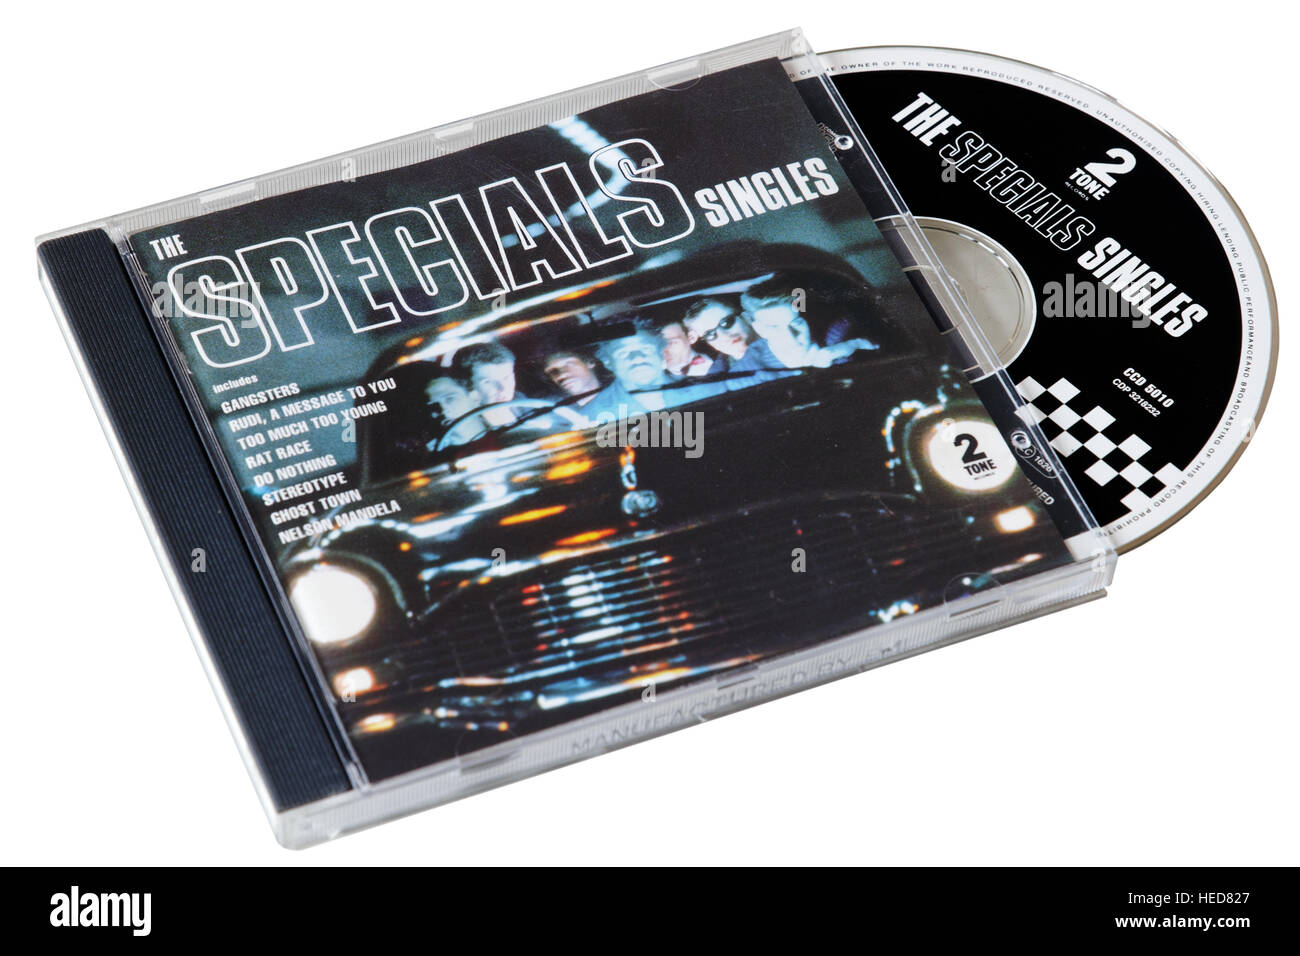 The Specials Singles CD - Stock Image